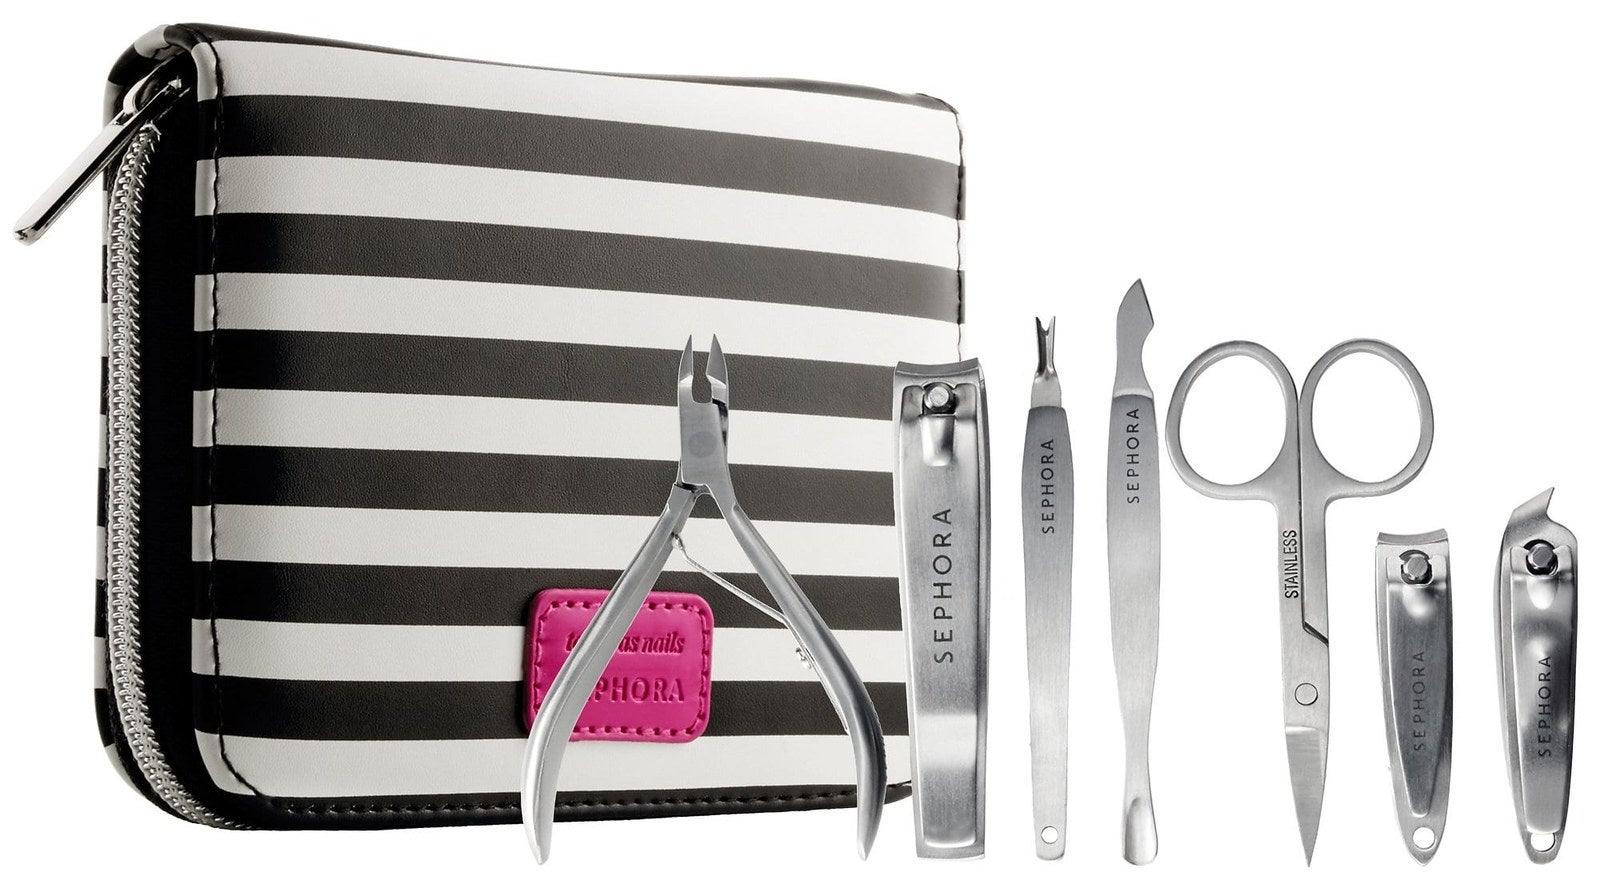 """Includes cuticle nipper, angled Nail clipper, scissors, nail clipper, double ended cuticle trimmer/pusher, cuticle trimmer, and toe nail clipper. Promising review: """"They are not joking with the deluxe part of the name, these clippers are really sharp and well-made. No handles slide or jiggle loose, the spring feels incredibly strong and professional grade, I could not be happier with this set. It's not a full manicure kit as there is no nail file (weird, right?) but it's very pro all the way."""" —annedroidGet it from Sephora for $20."""